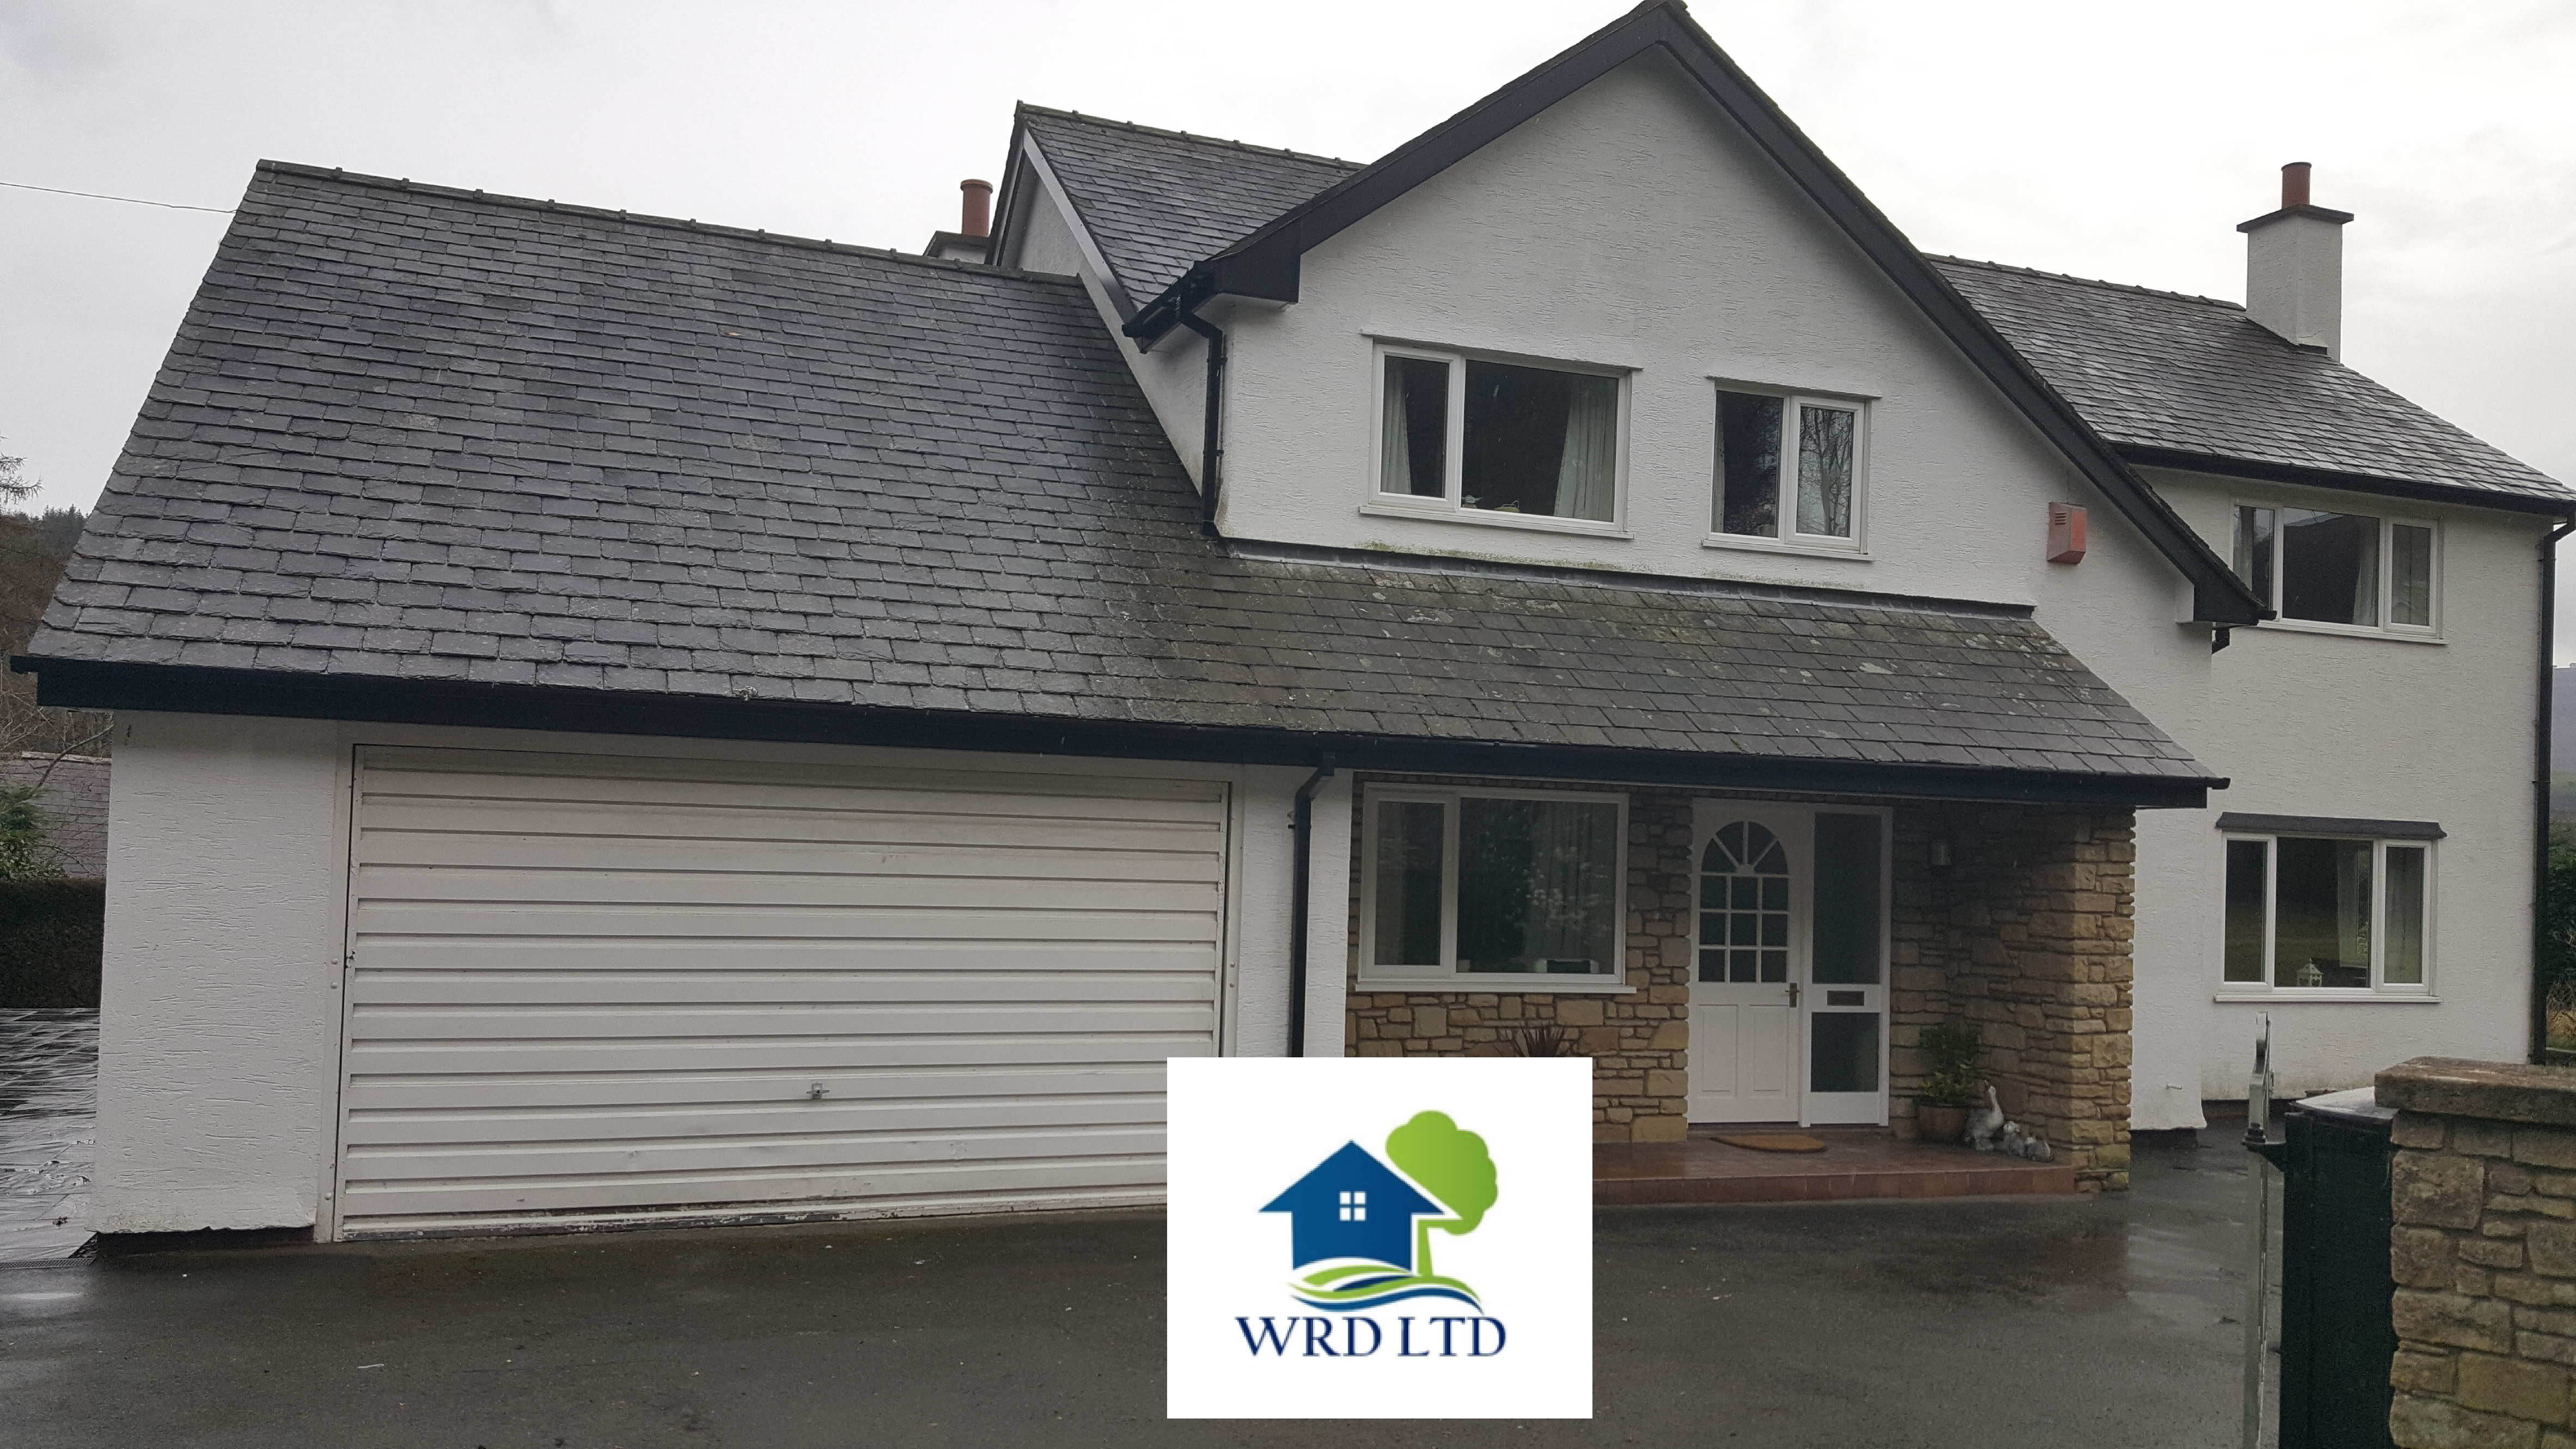 Upvc Fascias And Soffits | Weatherseal Roofline Design